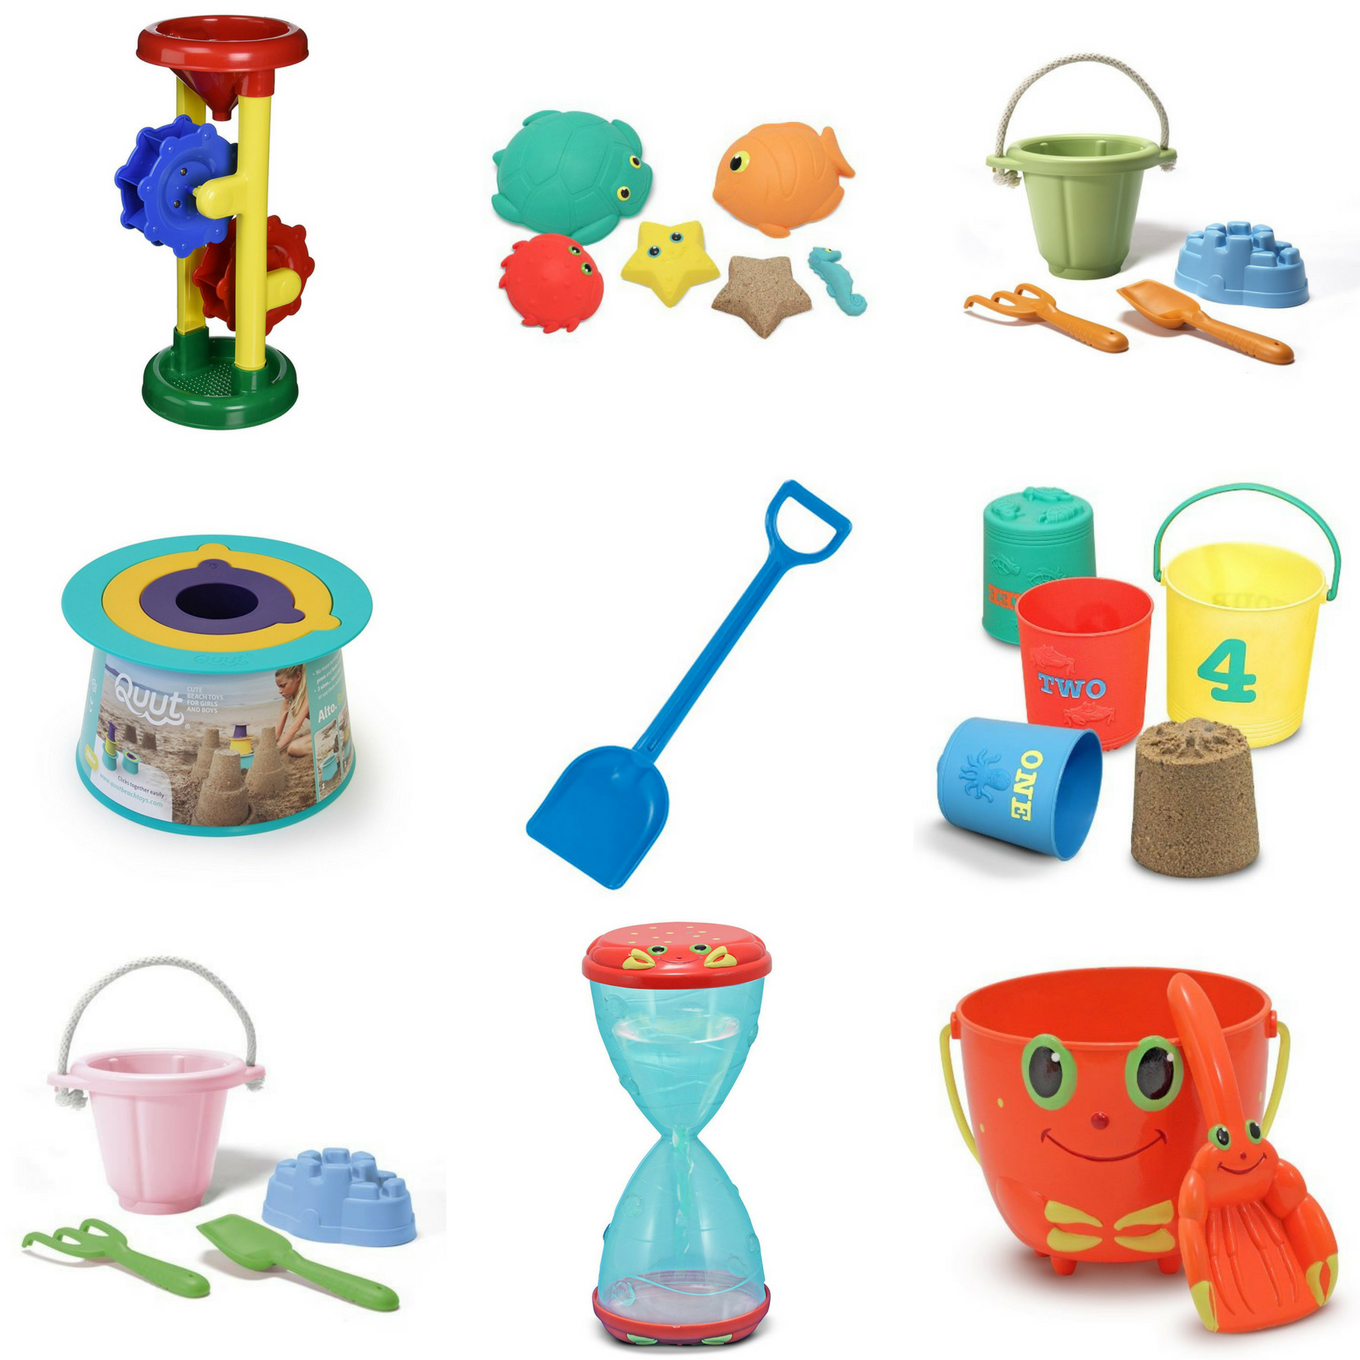 The Best Basic Sand Toys for Kids